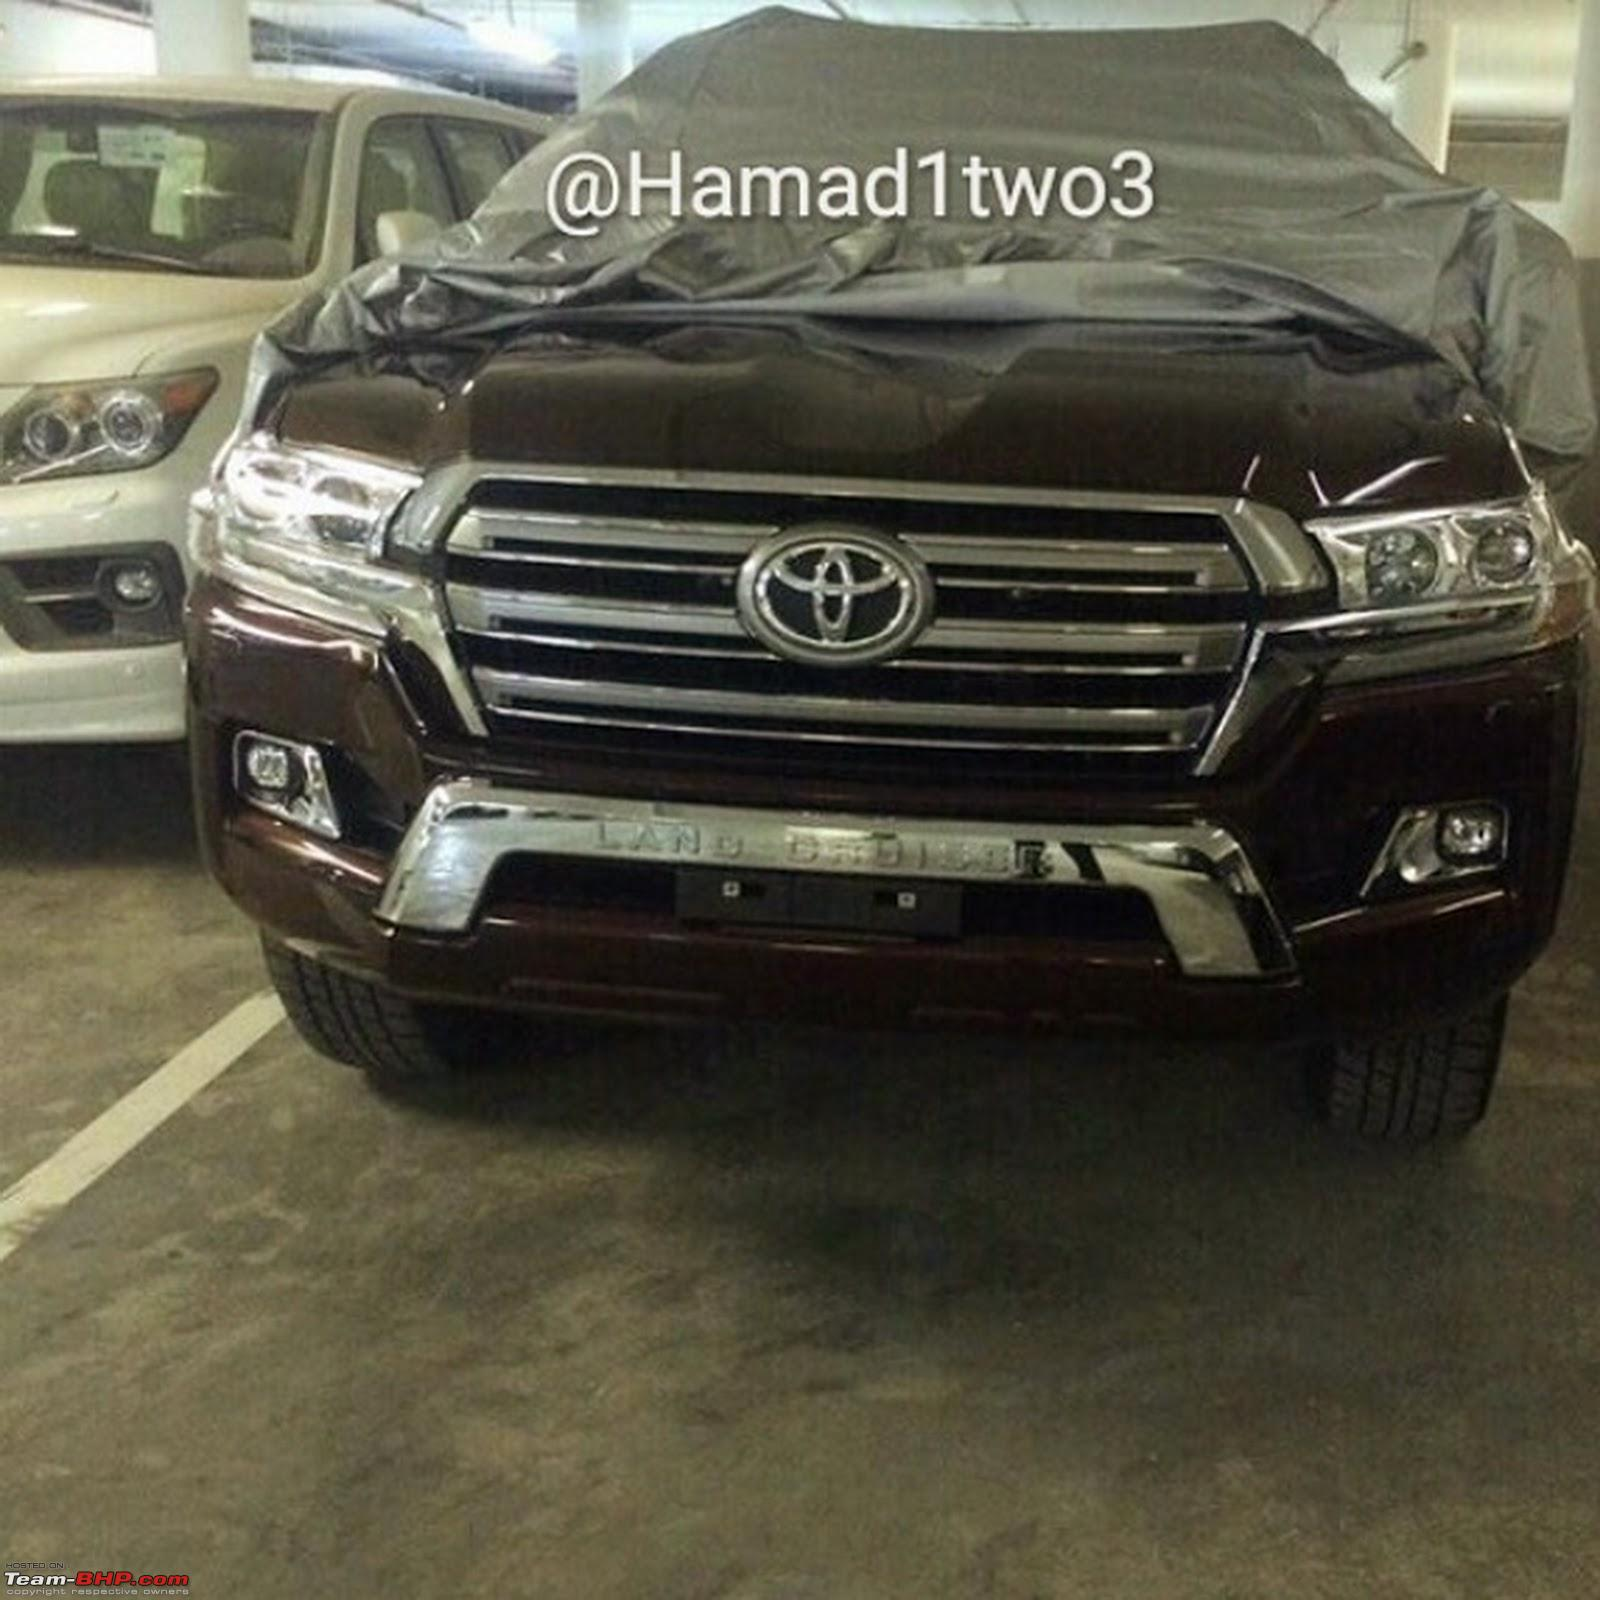 2016 toyota land cruiser pics leaked edit launched in india at rs 1 29